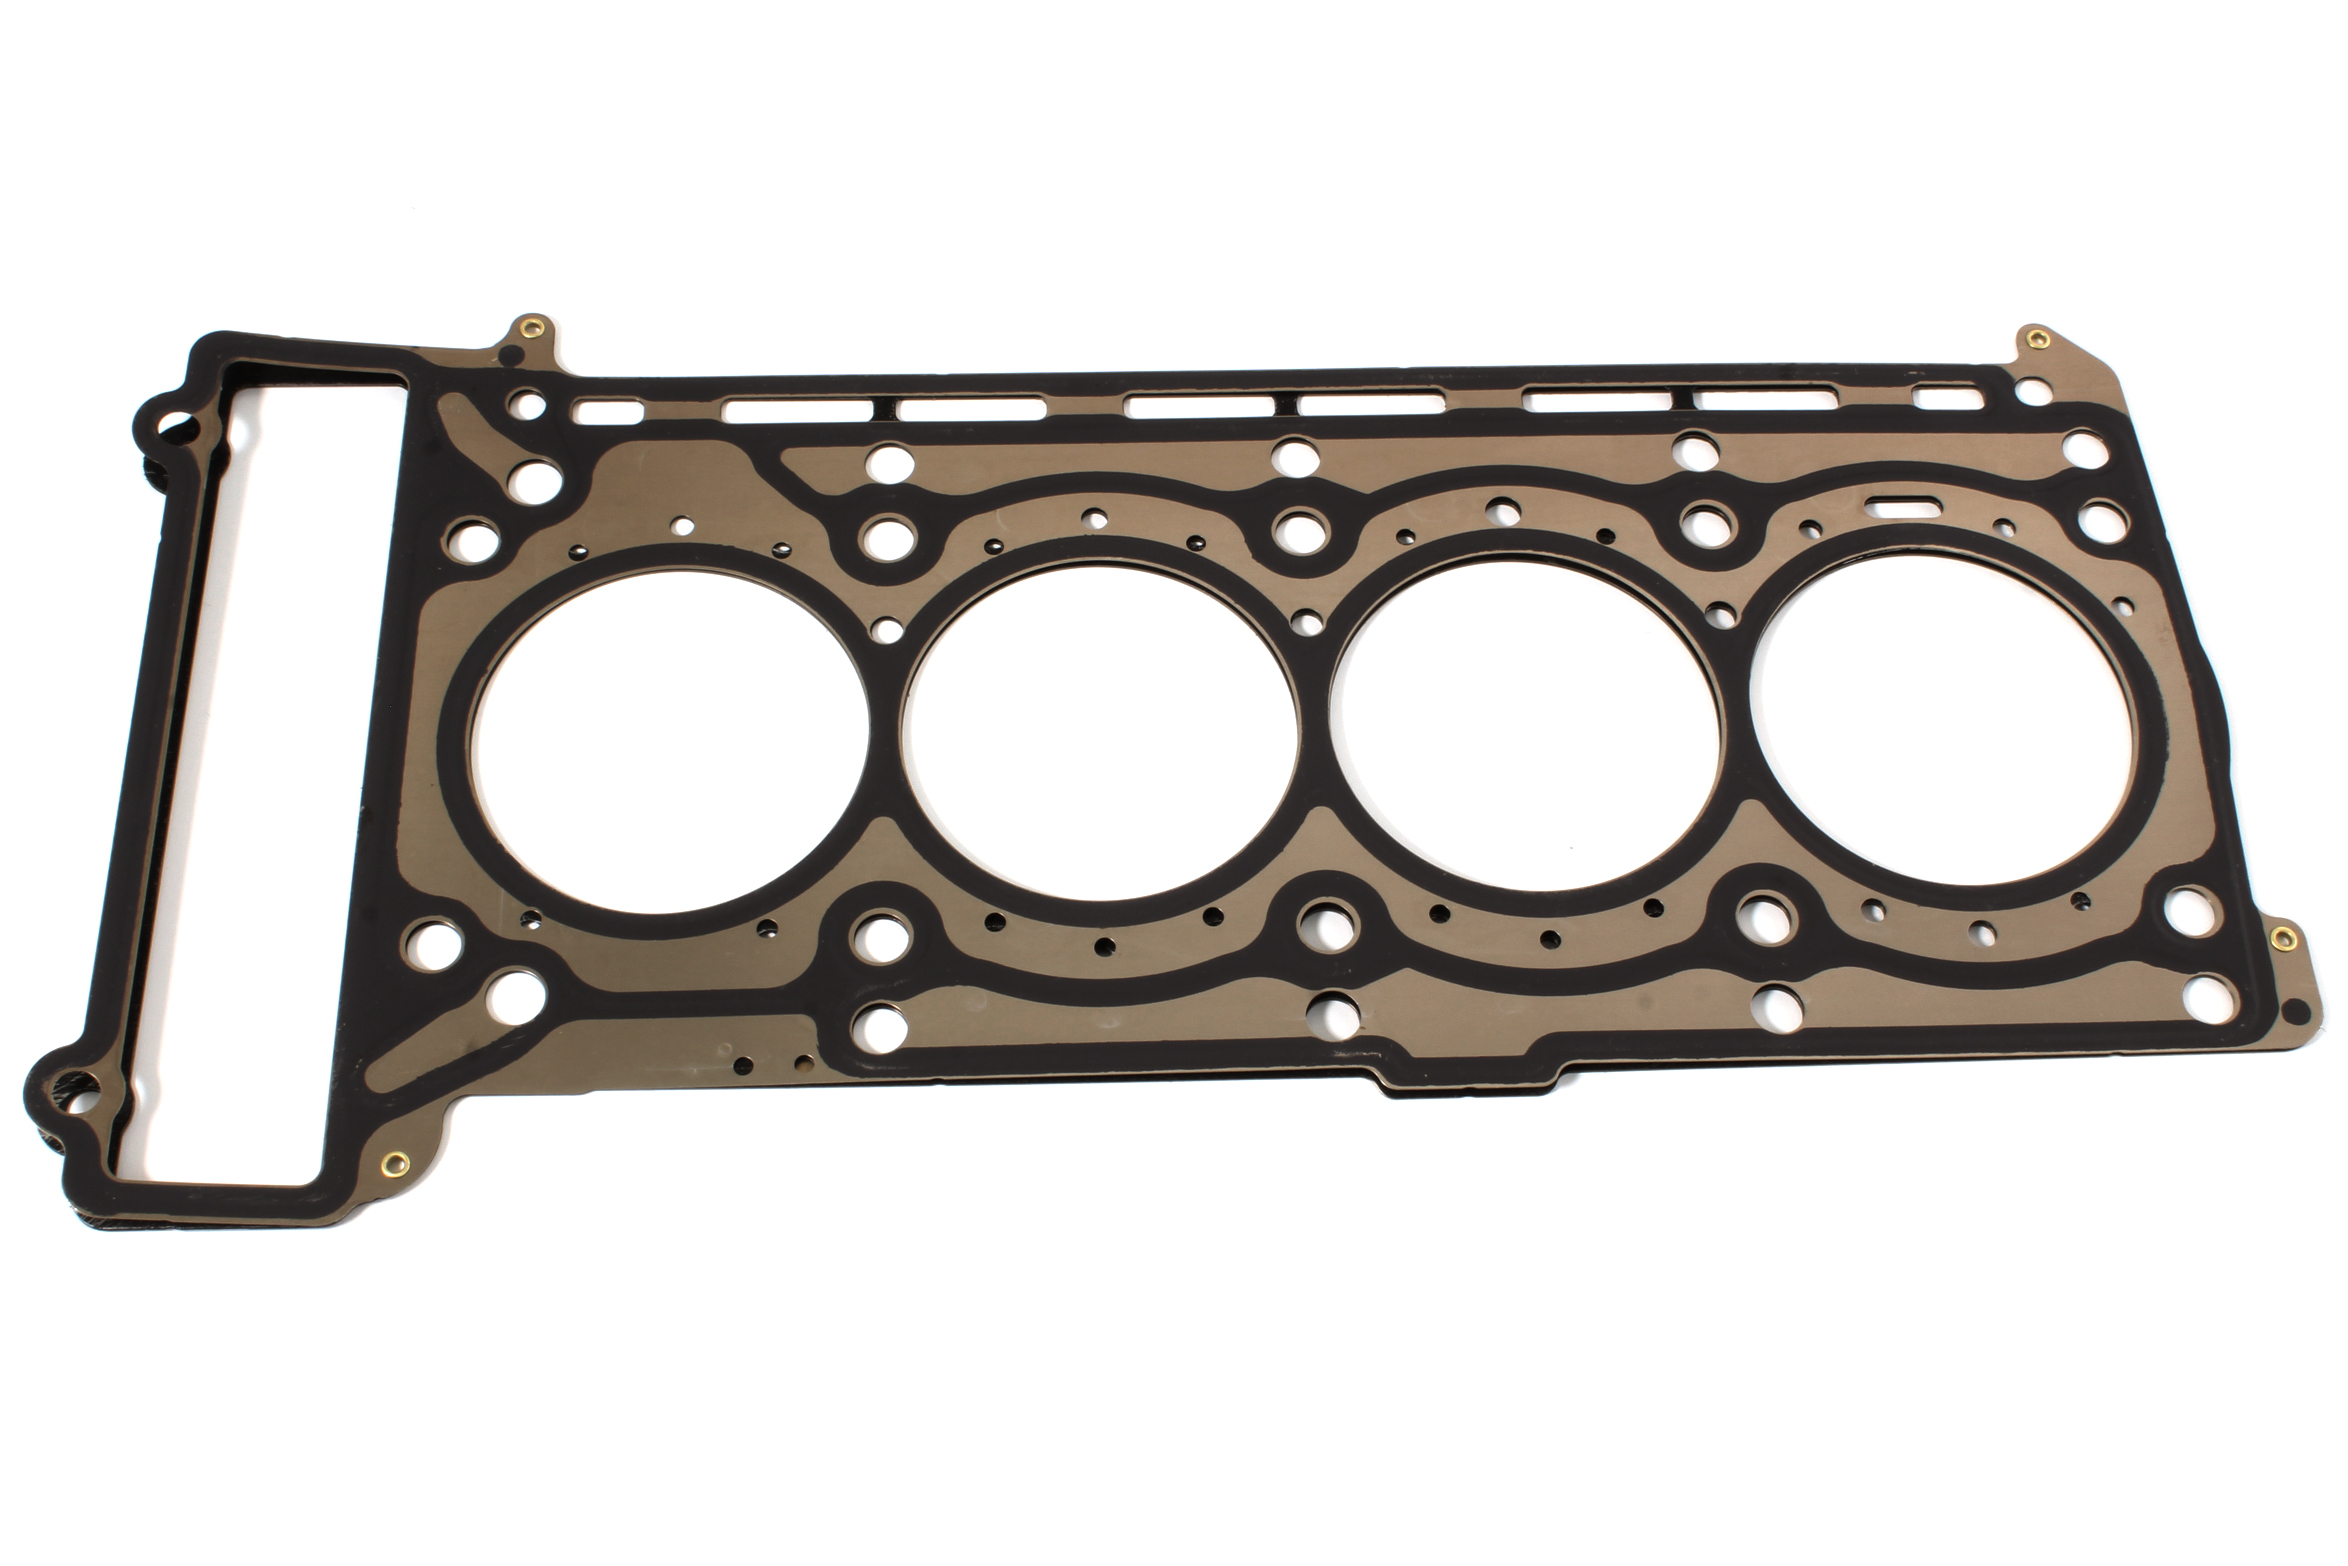 Cylinder head gasket the GASKETS Mercedes Benz C180 a 1.8 M271 271.921 2710160520 NEW